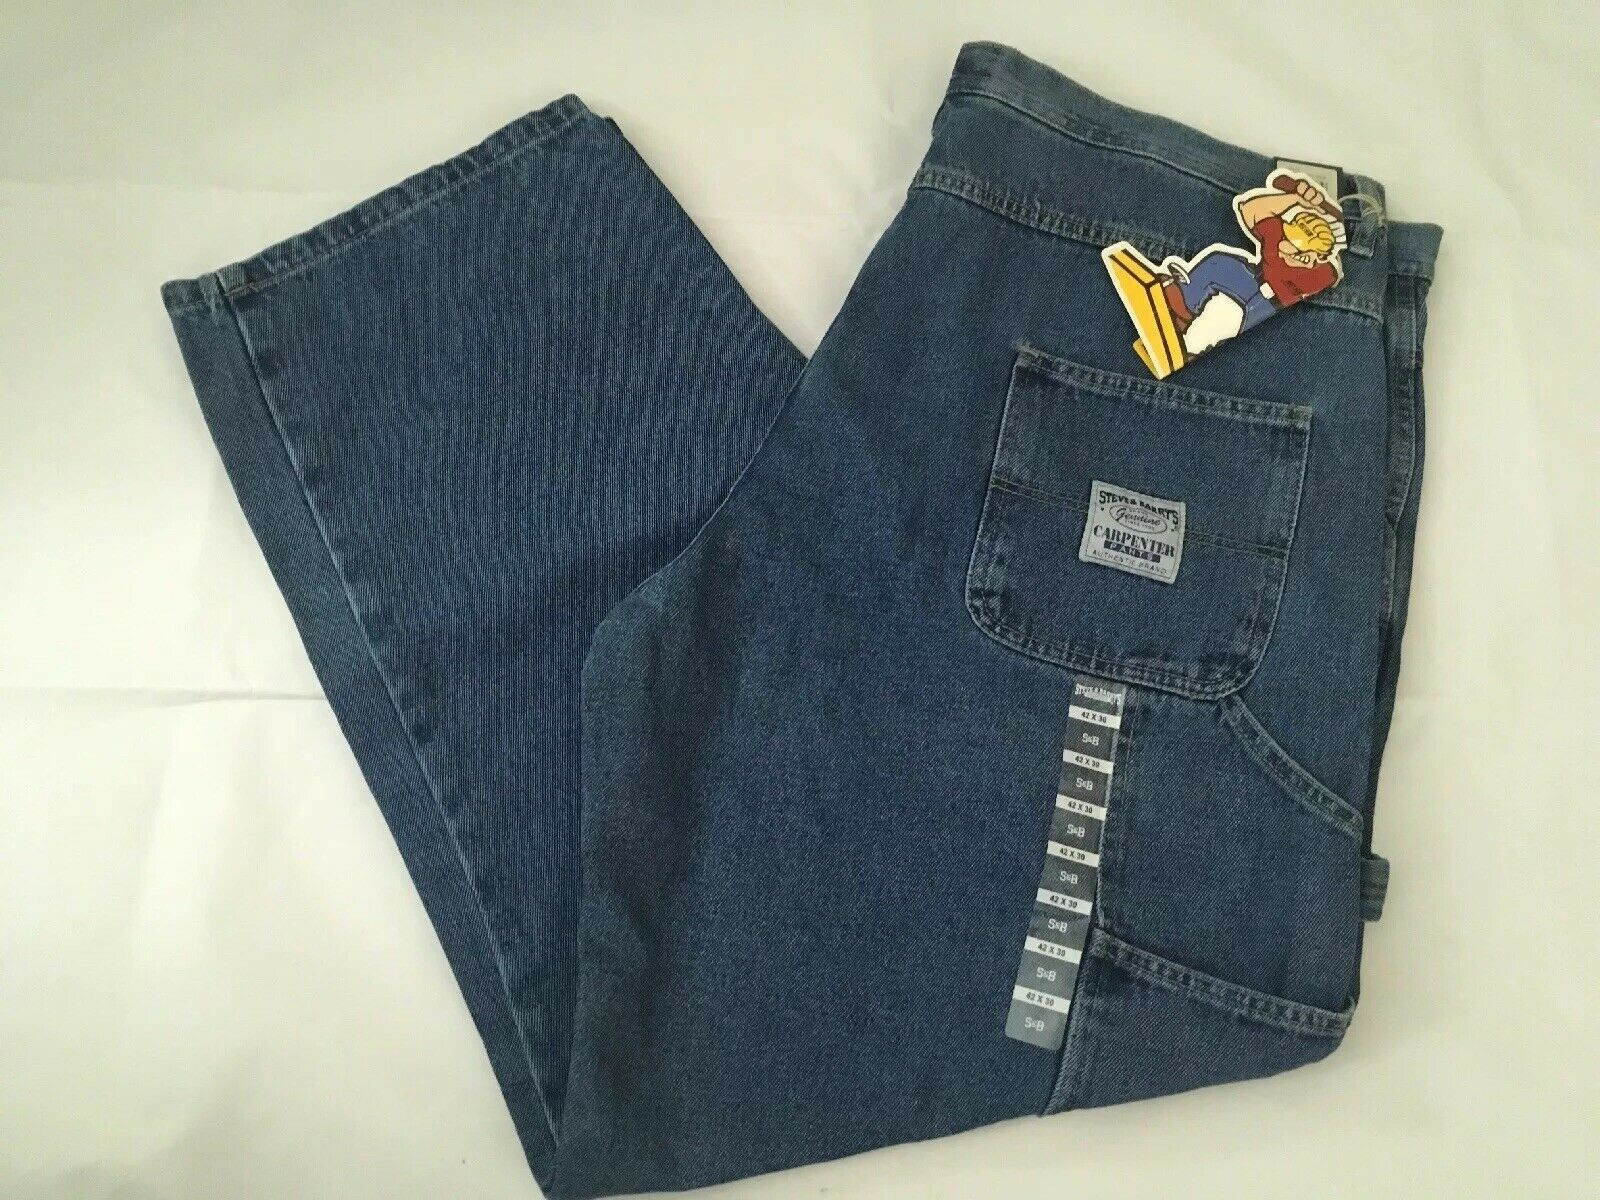 NWT Vintage 1990's Men's Steve & Barry's Carpenter Jean Pants, Size 42x30